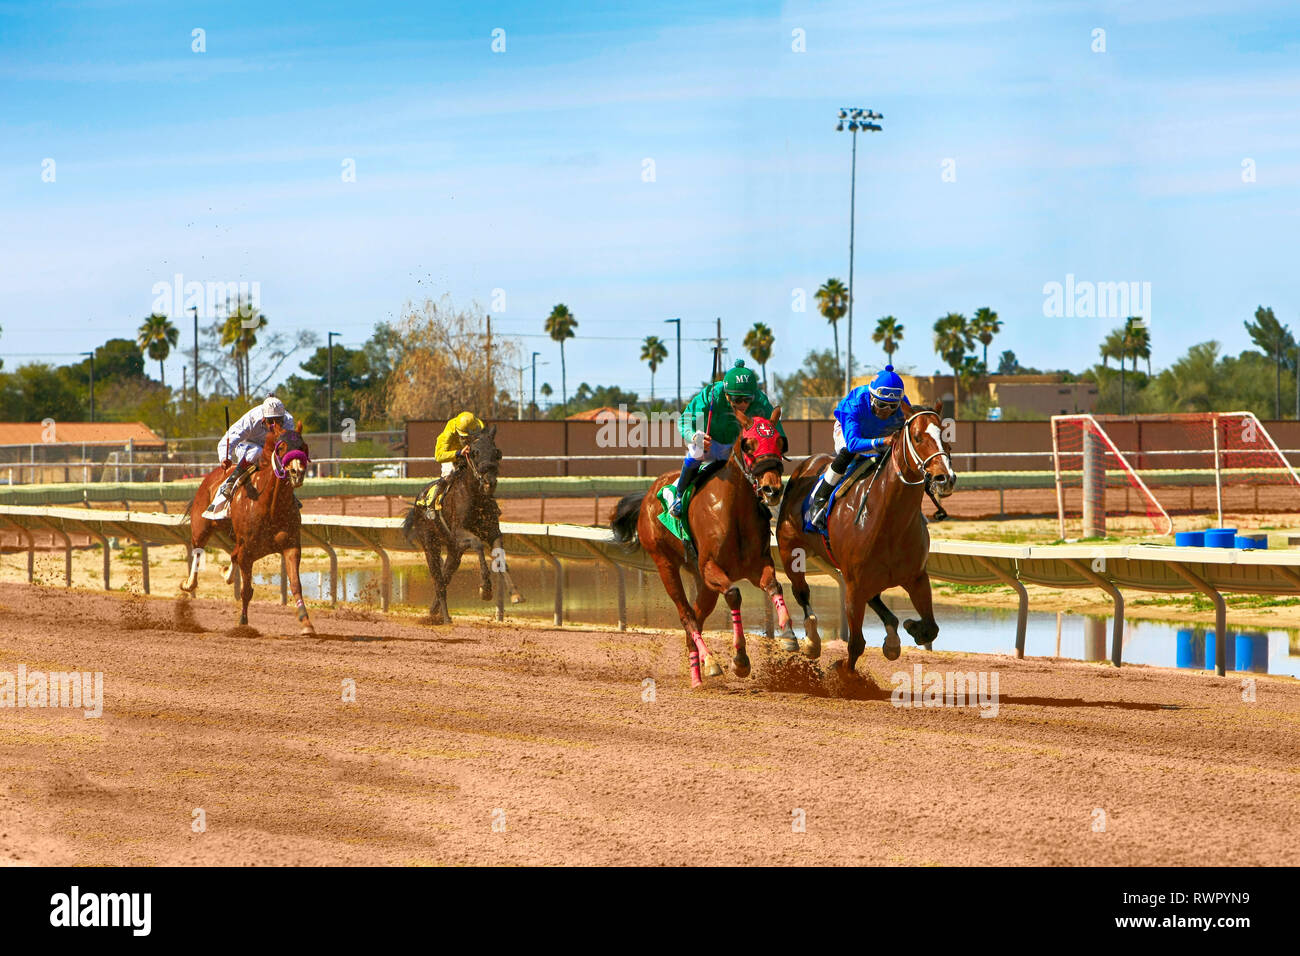 Horse racing at the Rillito Park race track in Tucson AZ - Stock Image